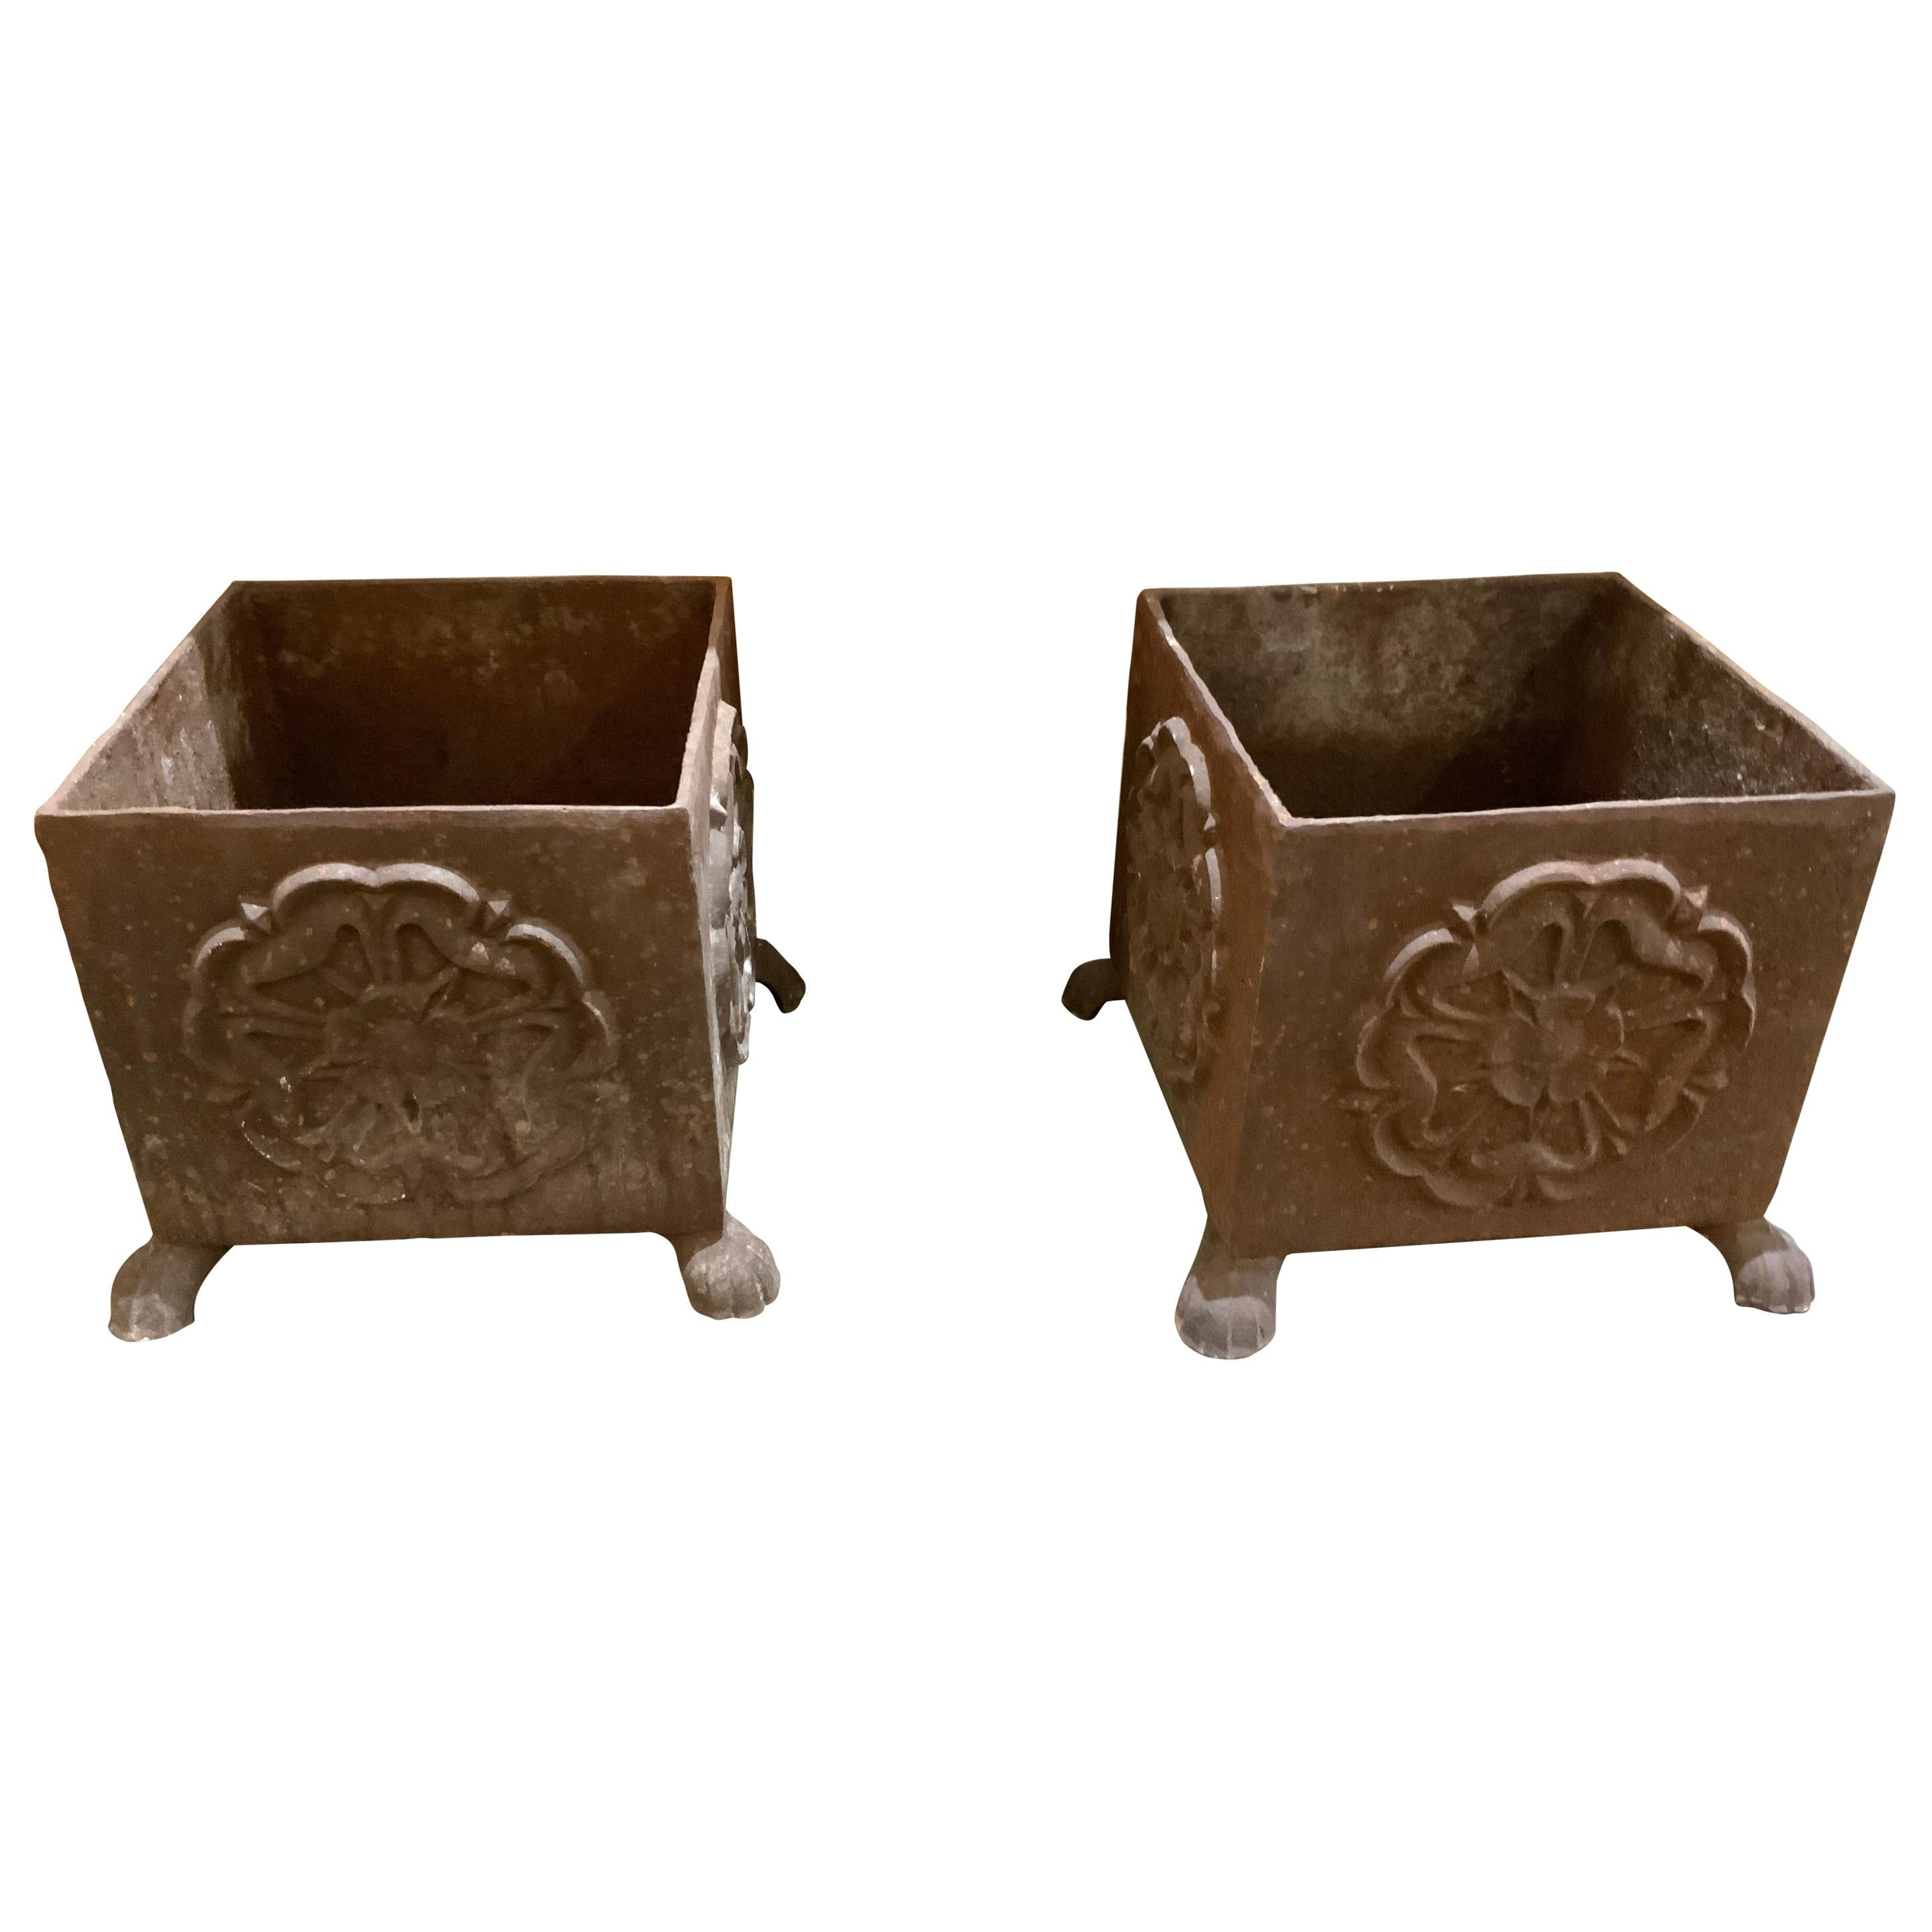 19th Century French Iron Planters